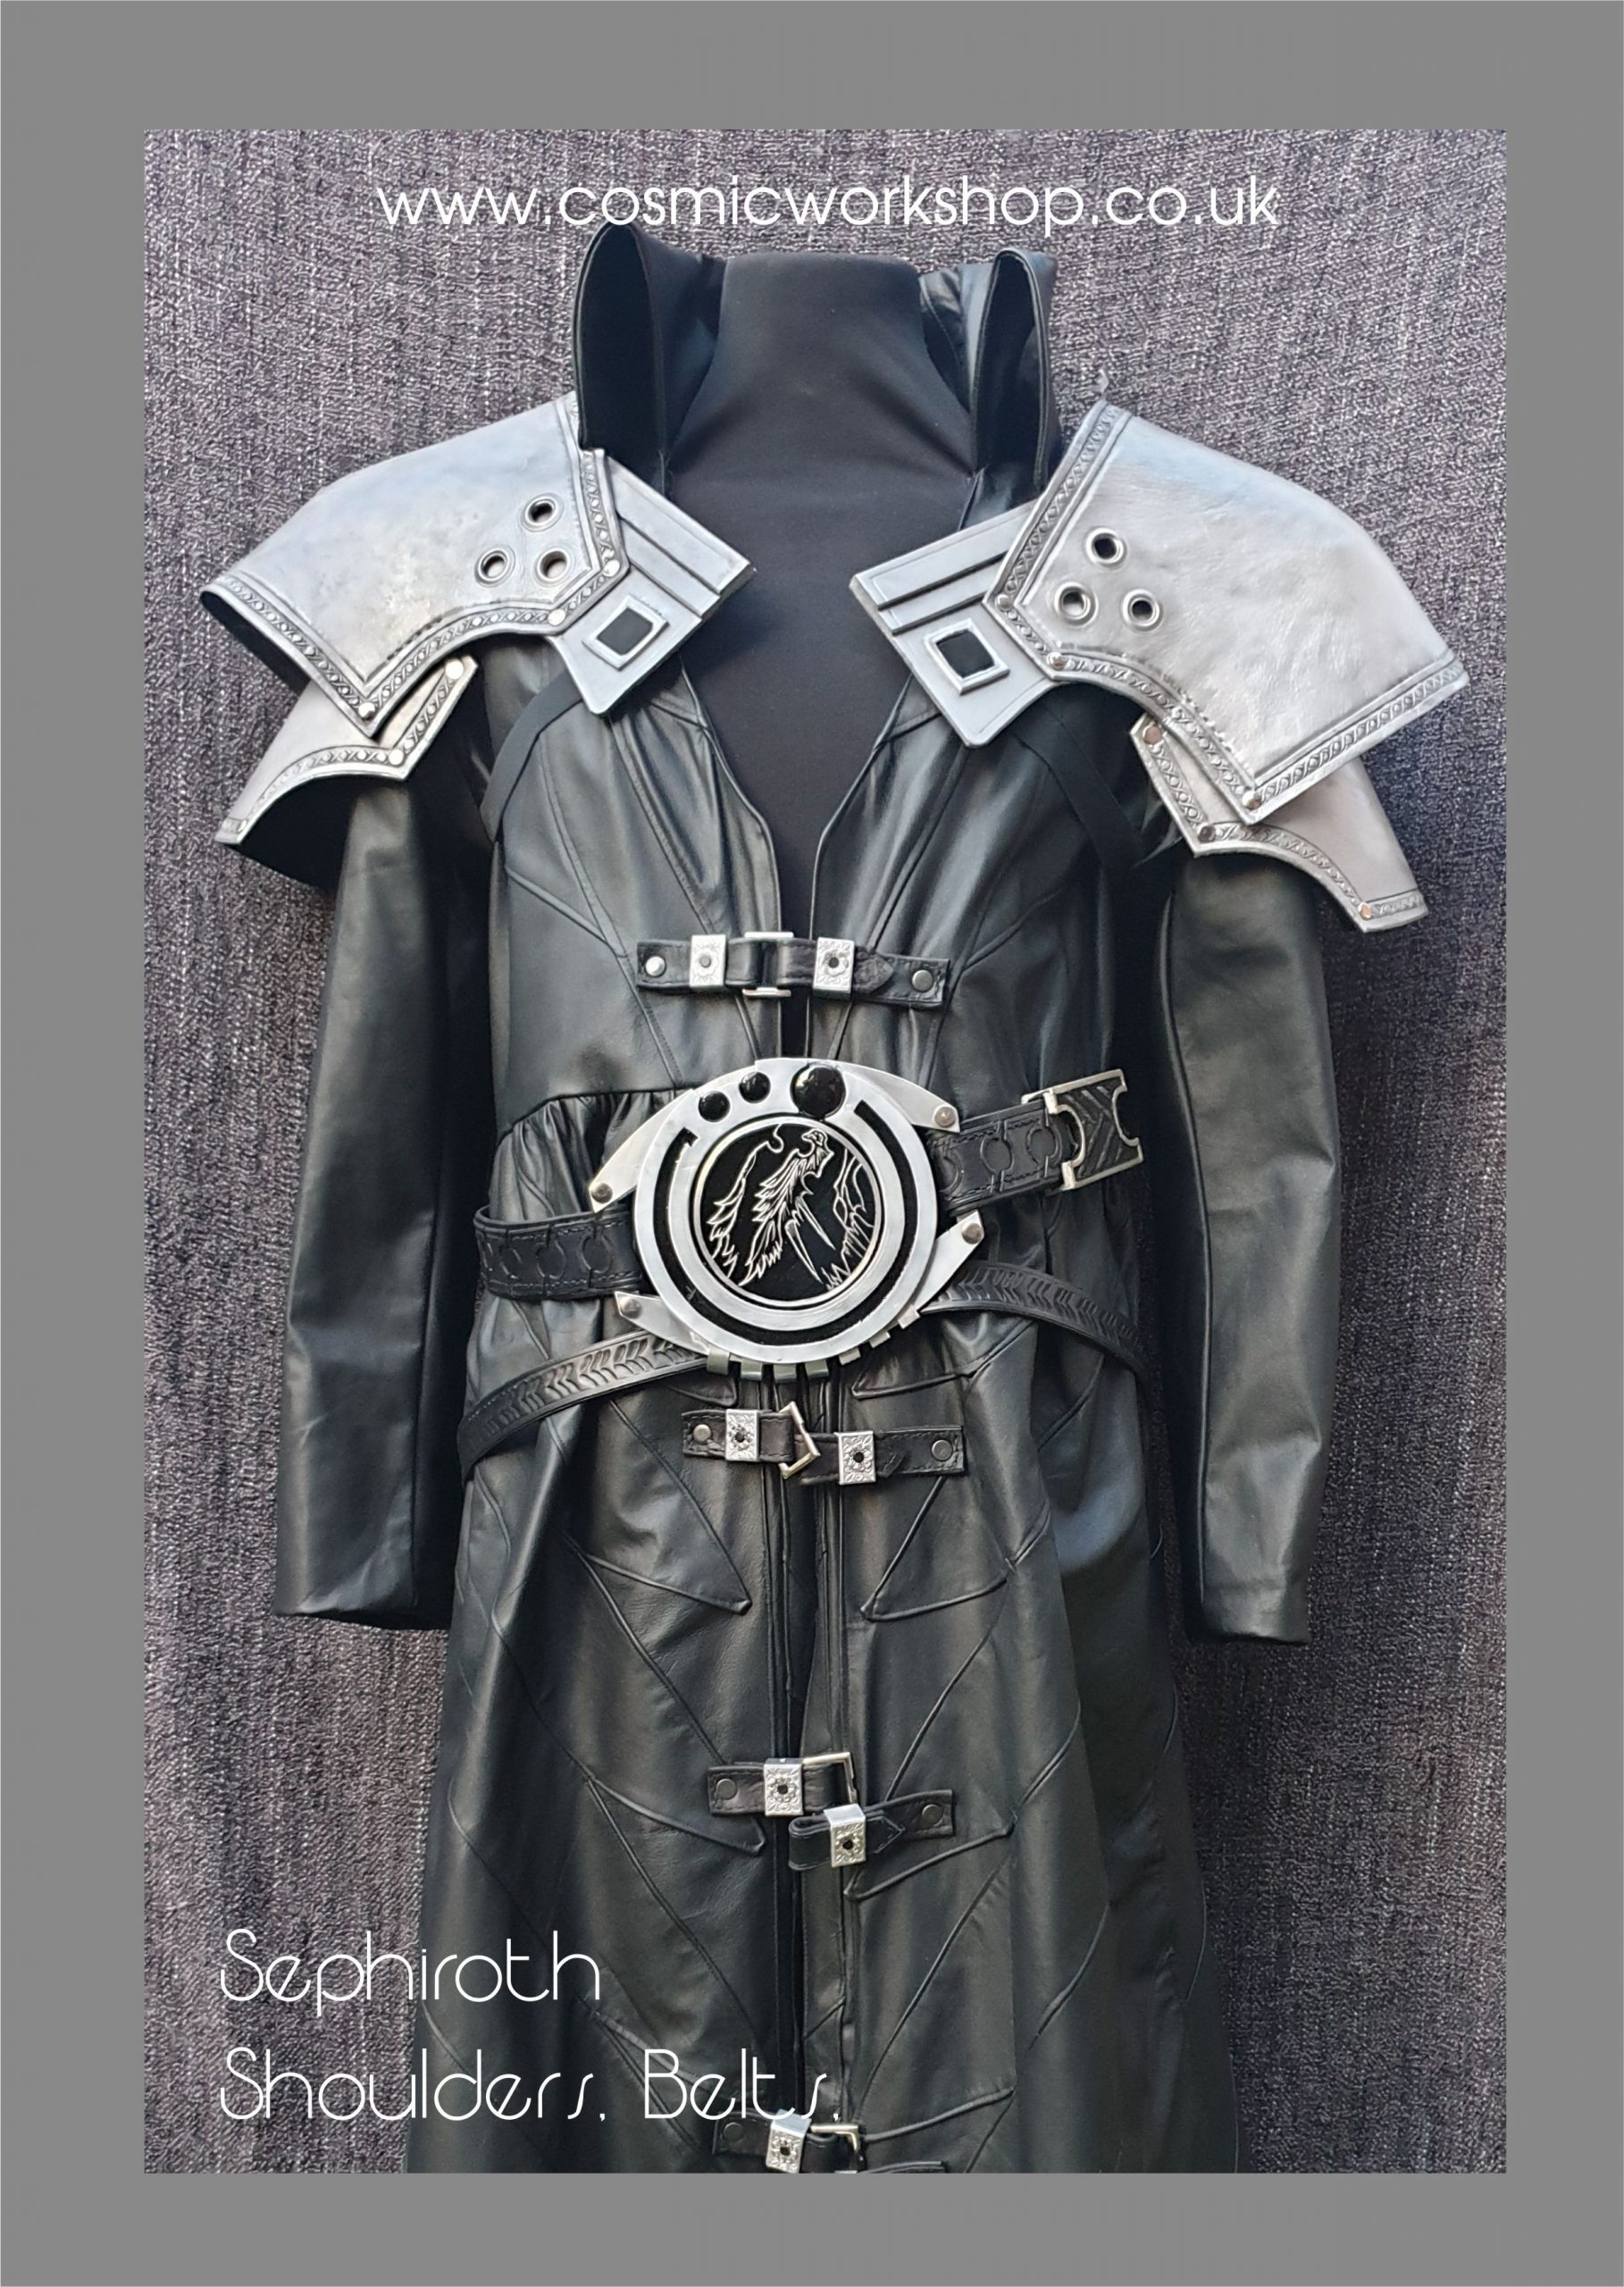 sephiroth armour final fantasy 7 remake